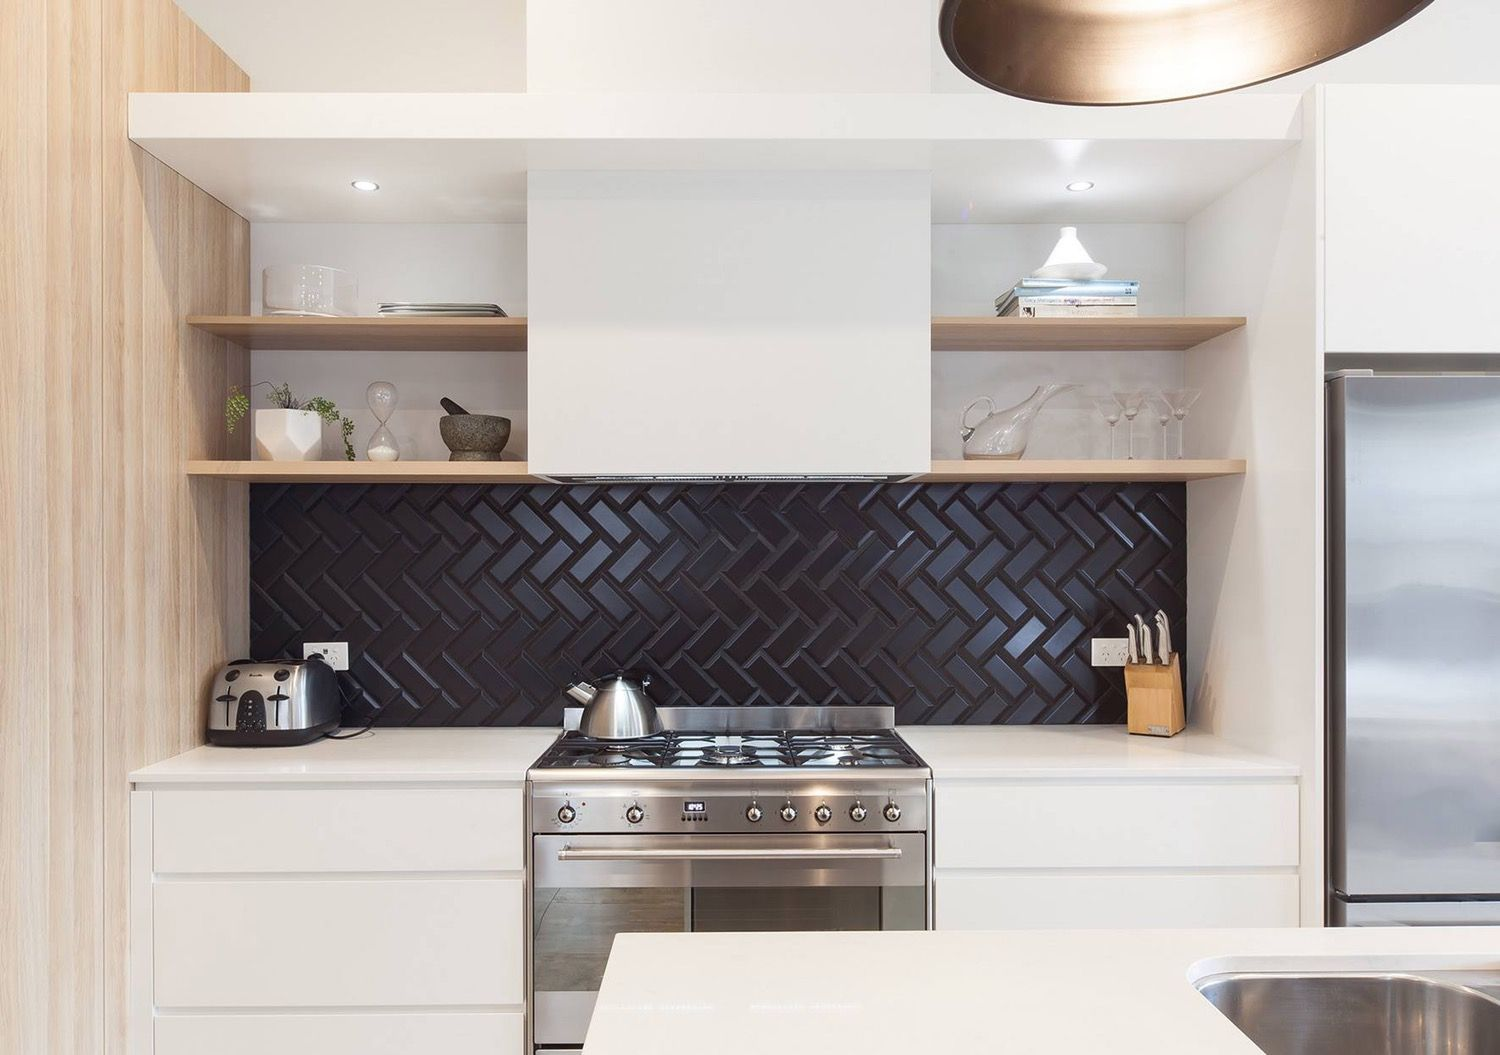 The Sophisticated New Tile Trend We Can T Get Enough Of Apartment Therapy Black Tiles Kitchen Kitchen Splashback Tiles Kitchen Splashback